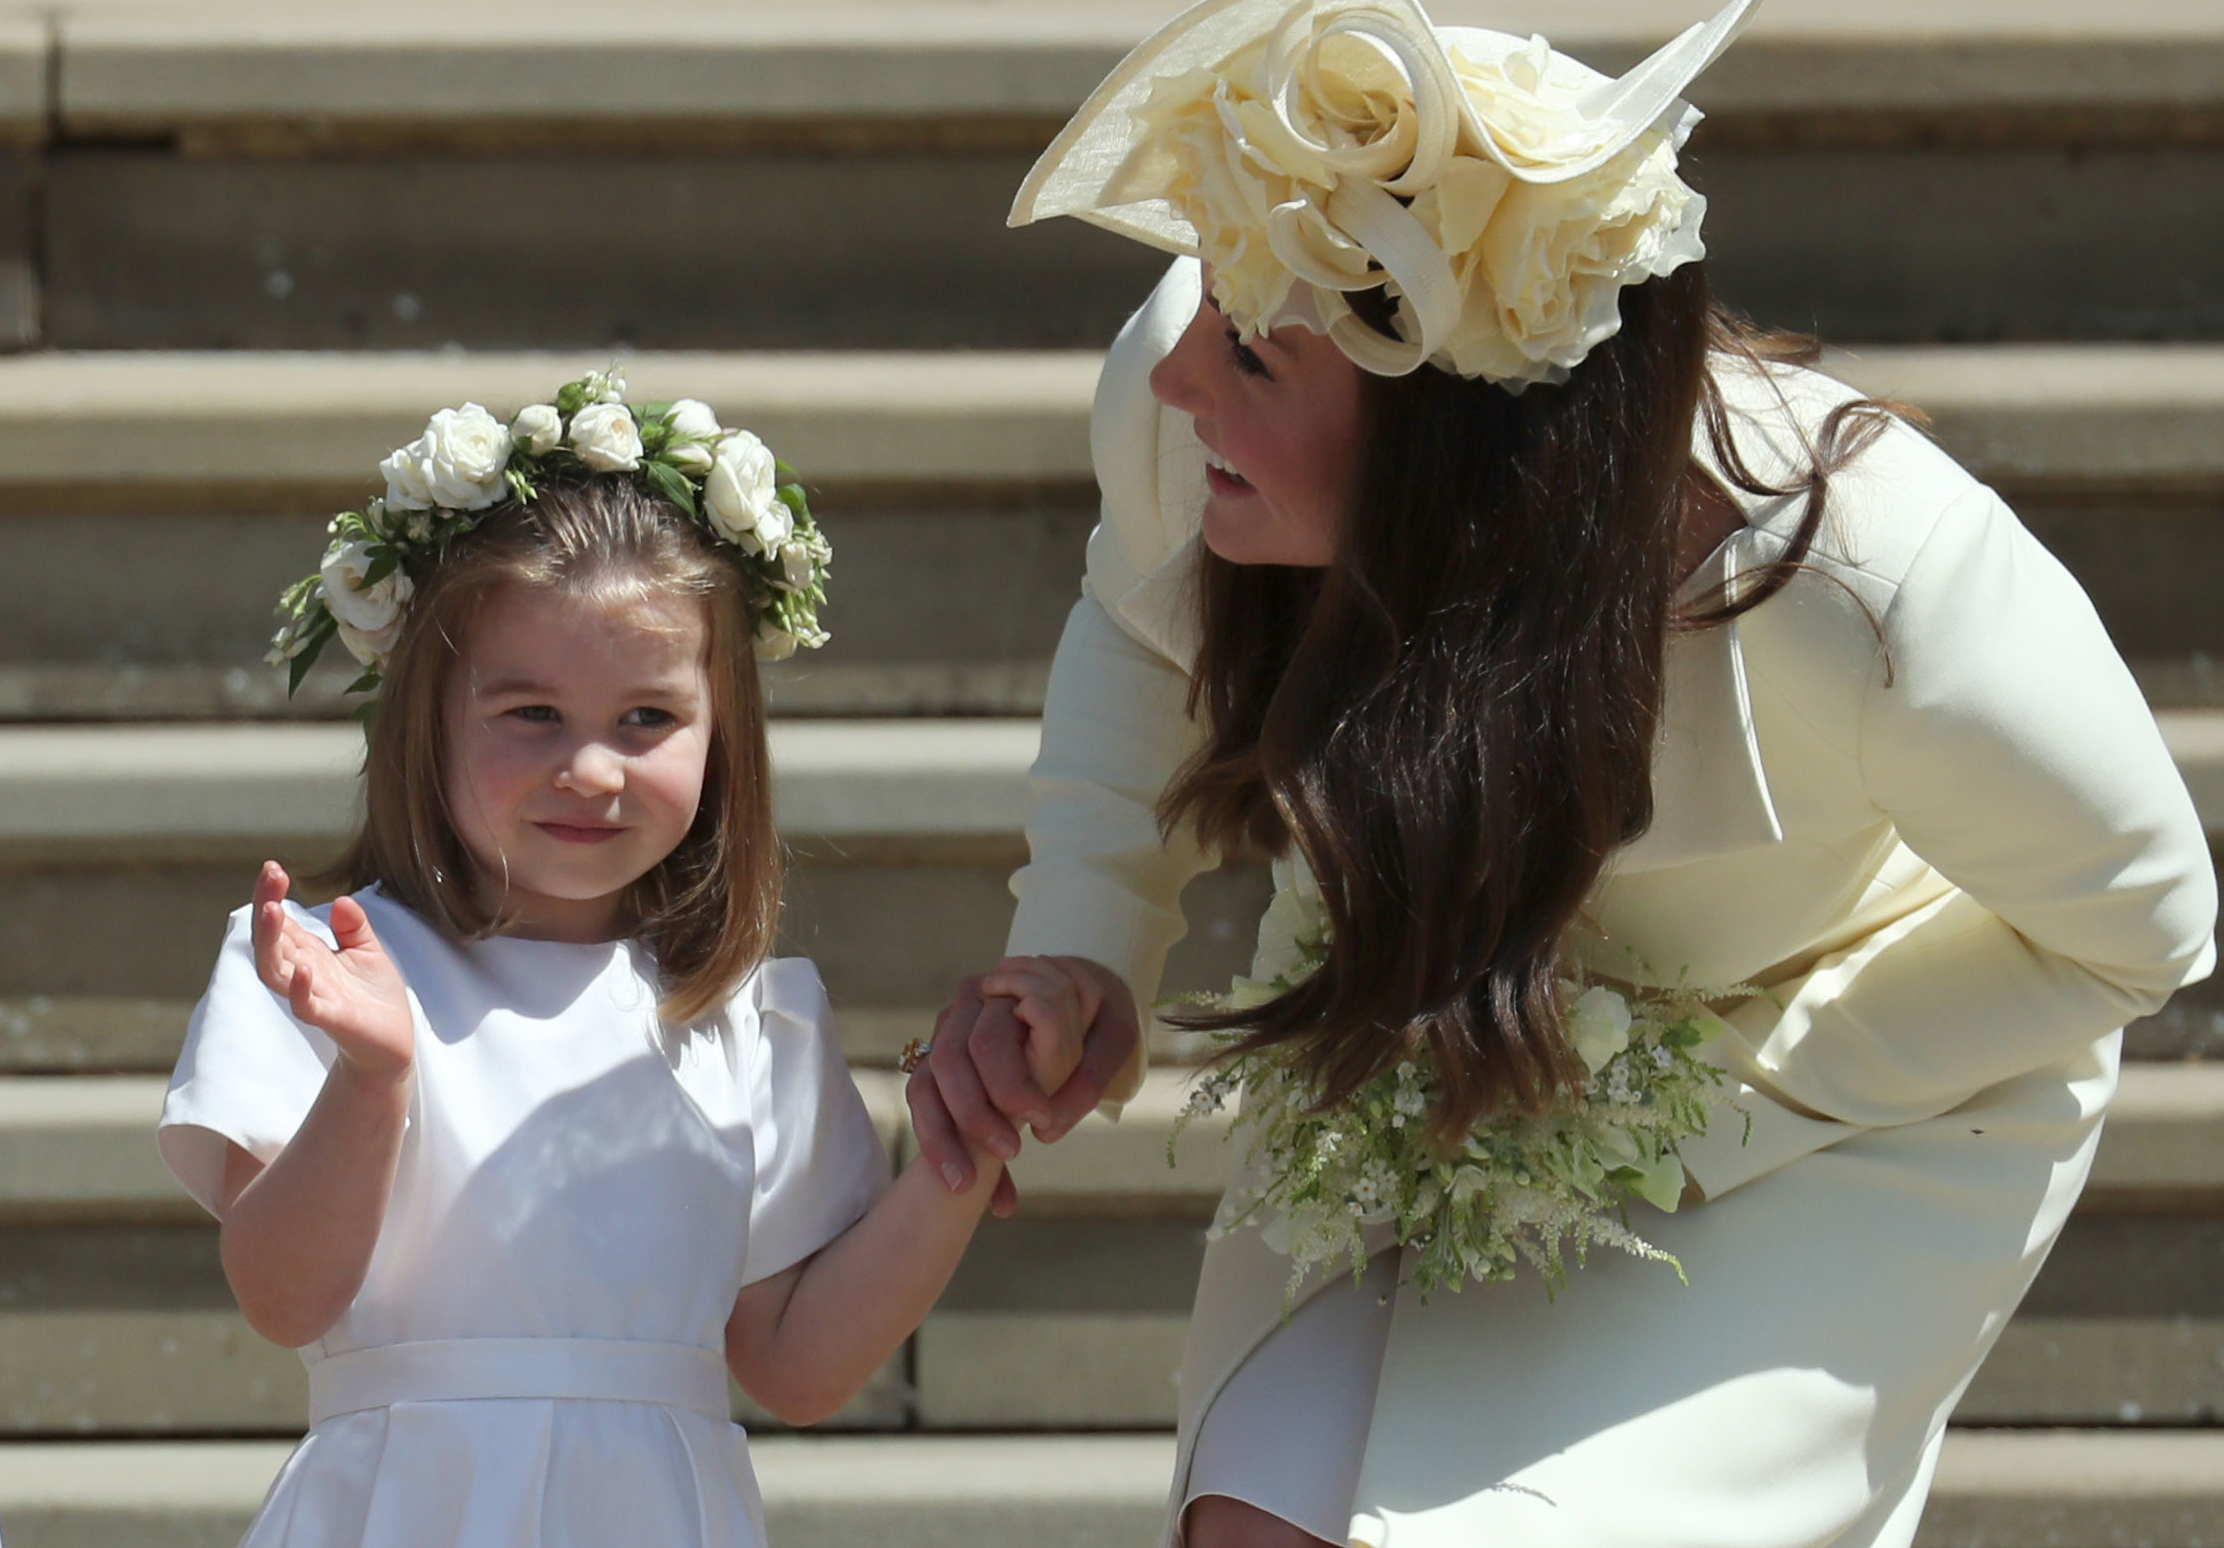 Princess Charlotte (L) waves by her mother Britain's Catherine, Duchess of Cambridge after attending the wedding ceremony of Britain's Prince Harry, Duke of Sussex and US actress Meghan Markle at St George's Chapel, Windsor Castle, in Windsor, on May 19, 2018.